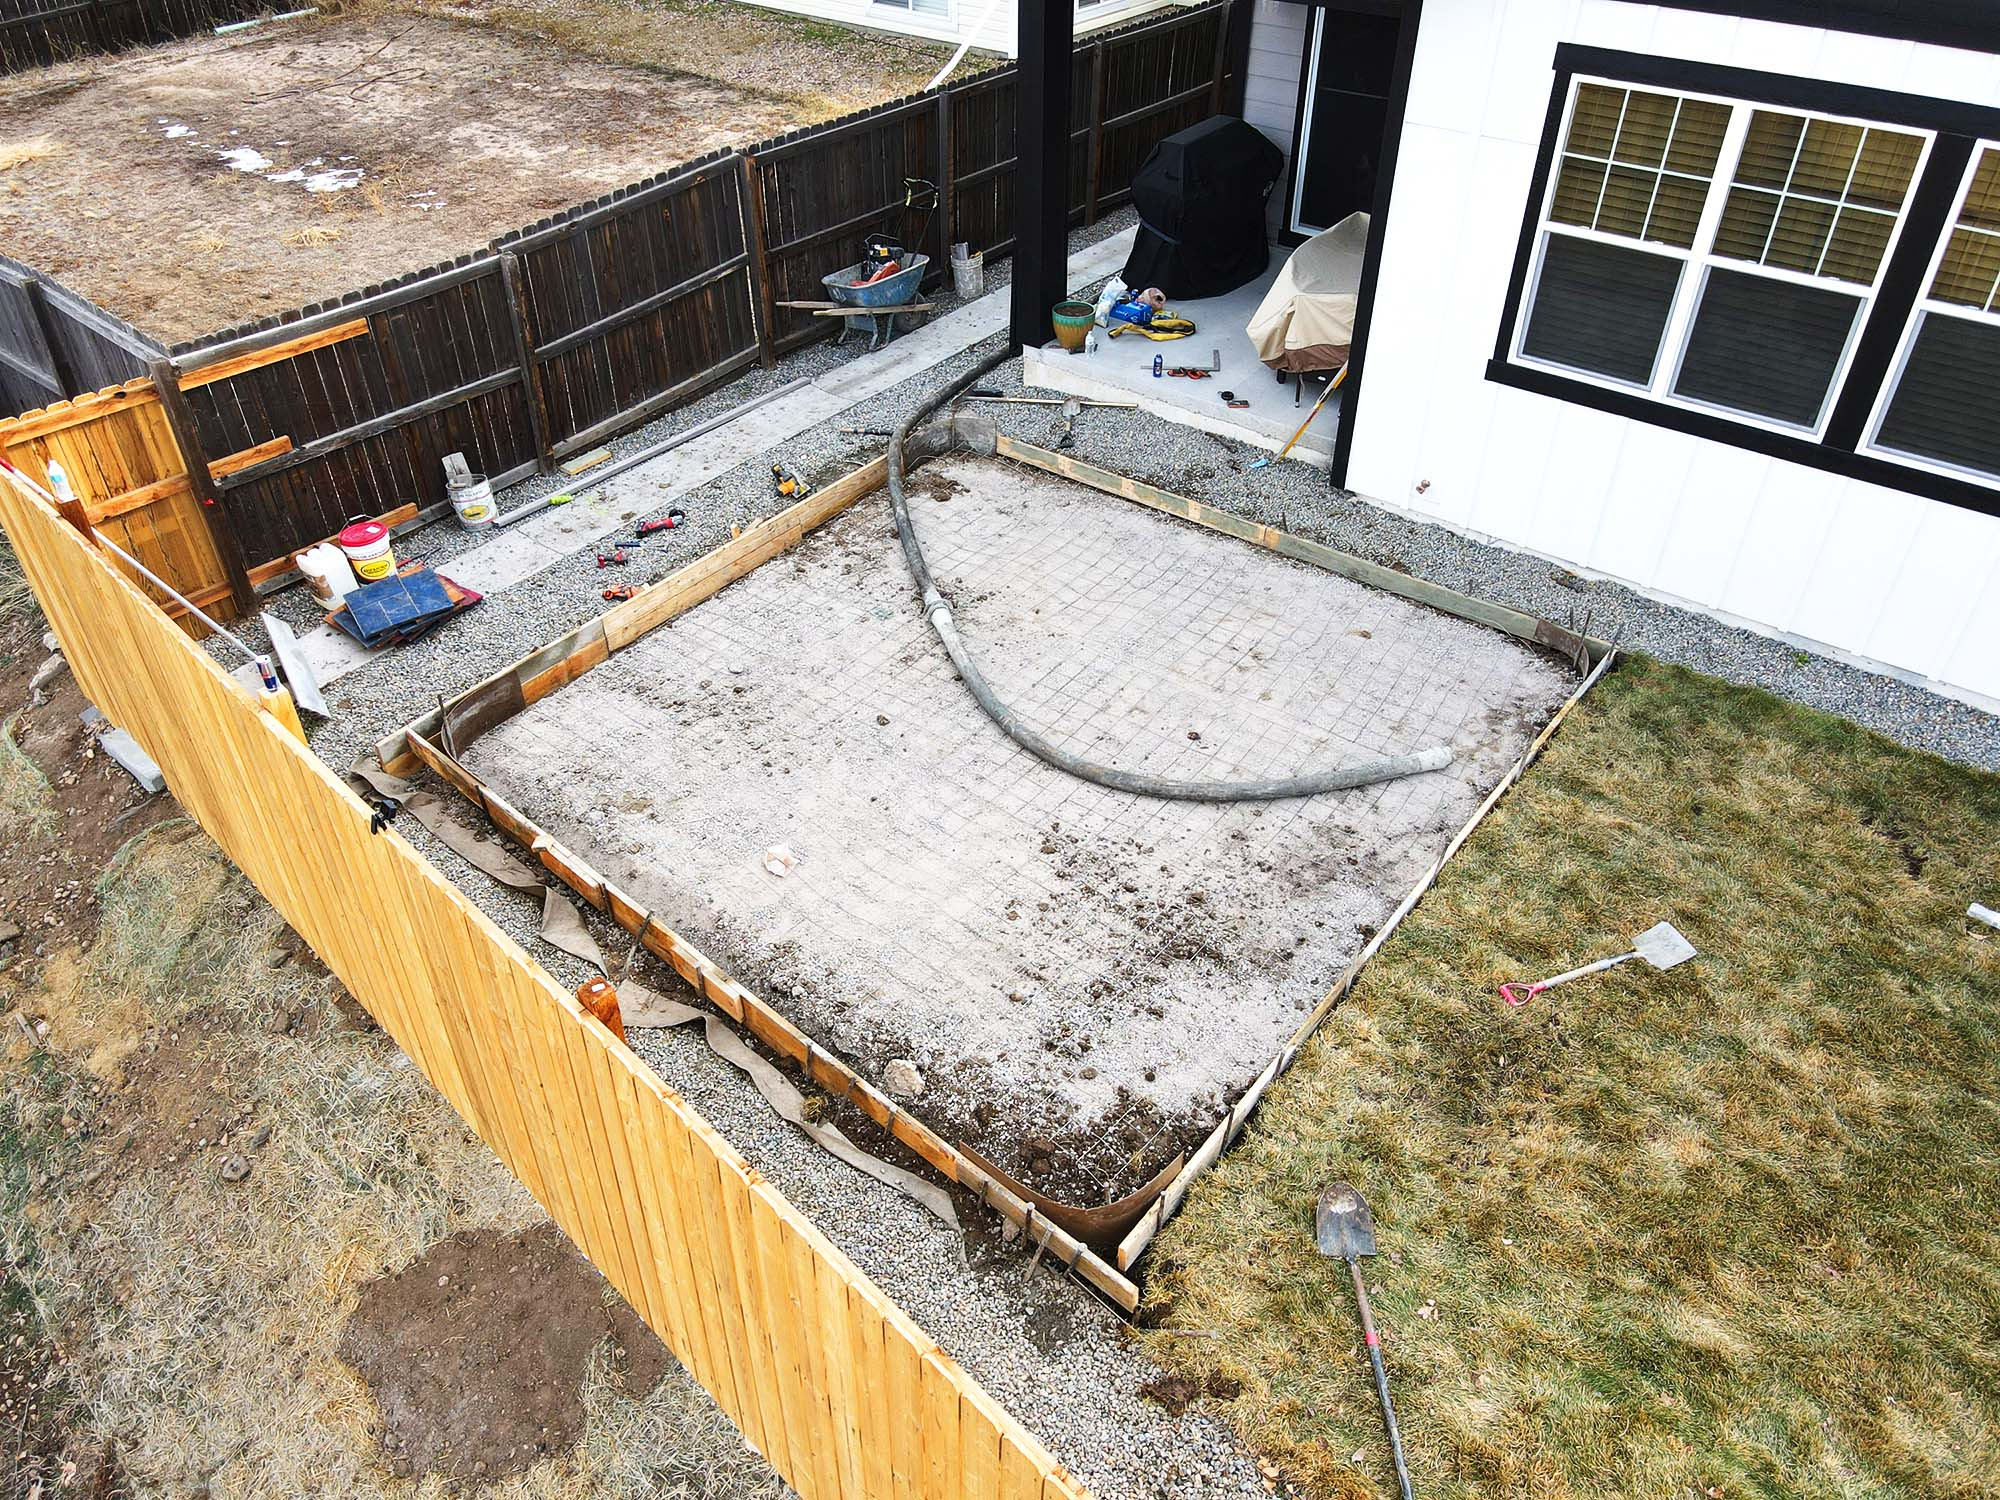 stamped concrete patio, prepared with forms and wire mesh reinforcement